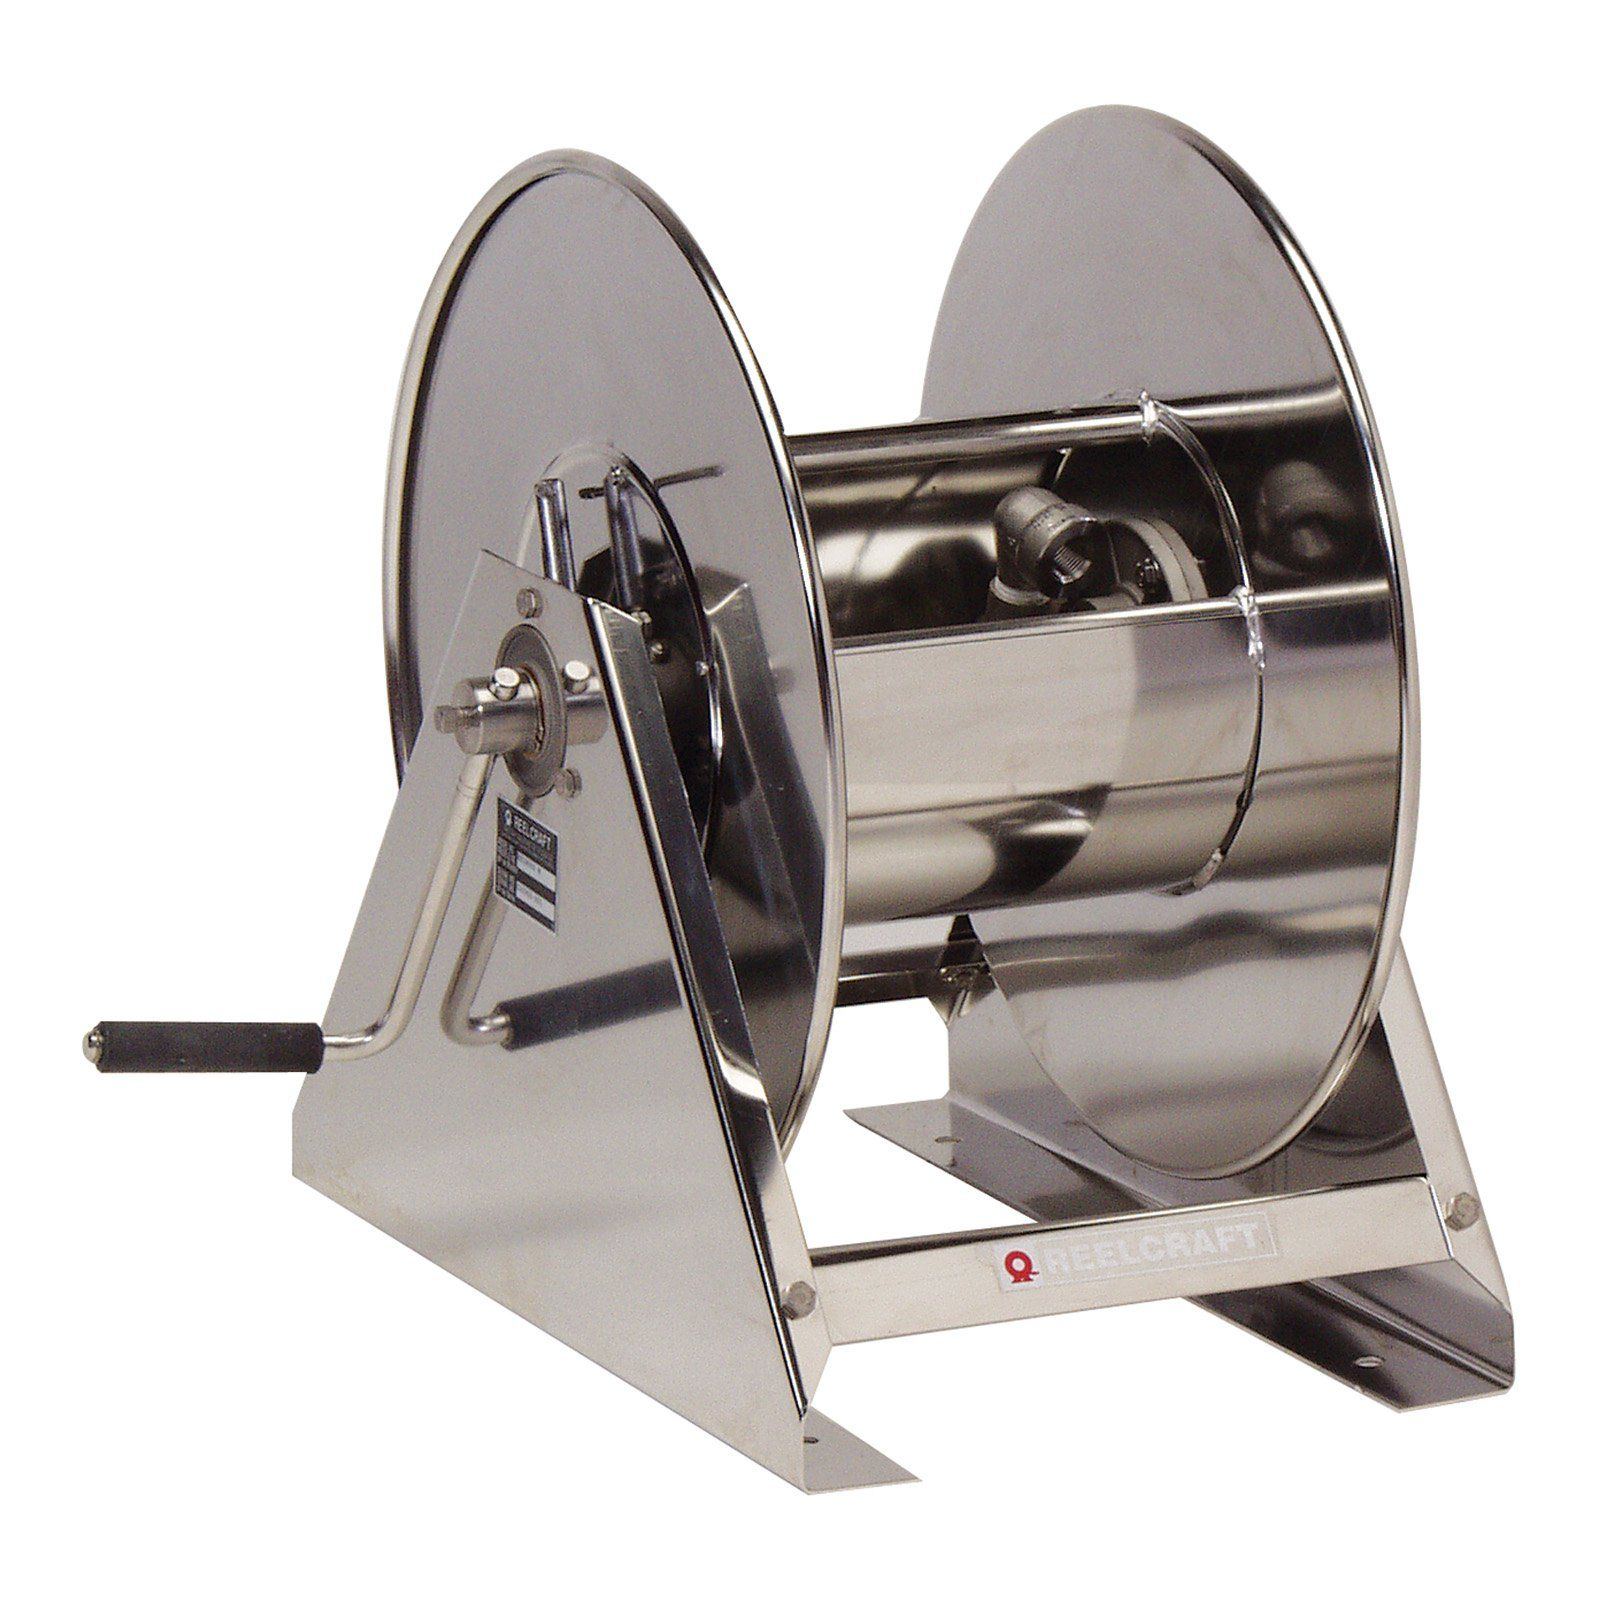 Reelcraft Stainless Steel Air Water 1 2 In Hose Reel 200 Ft Hose Reel Retractable Hose Stainless Steel Hose